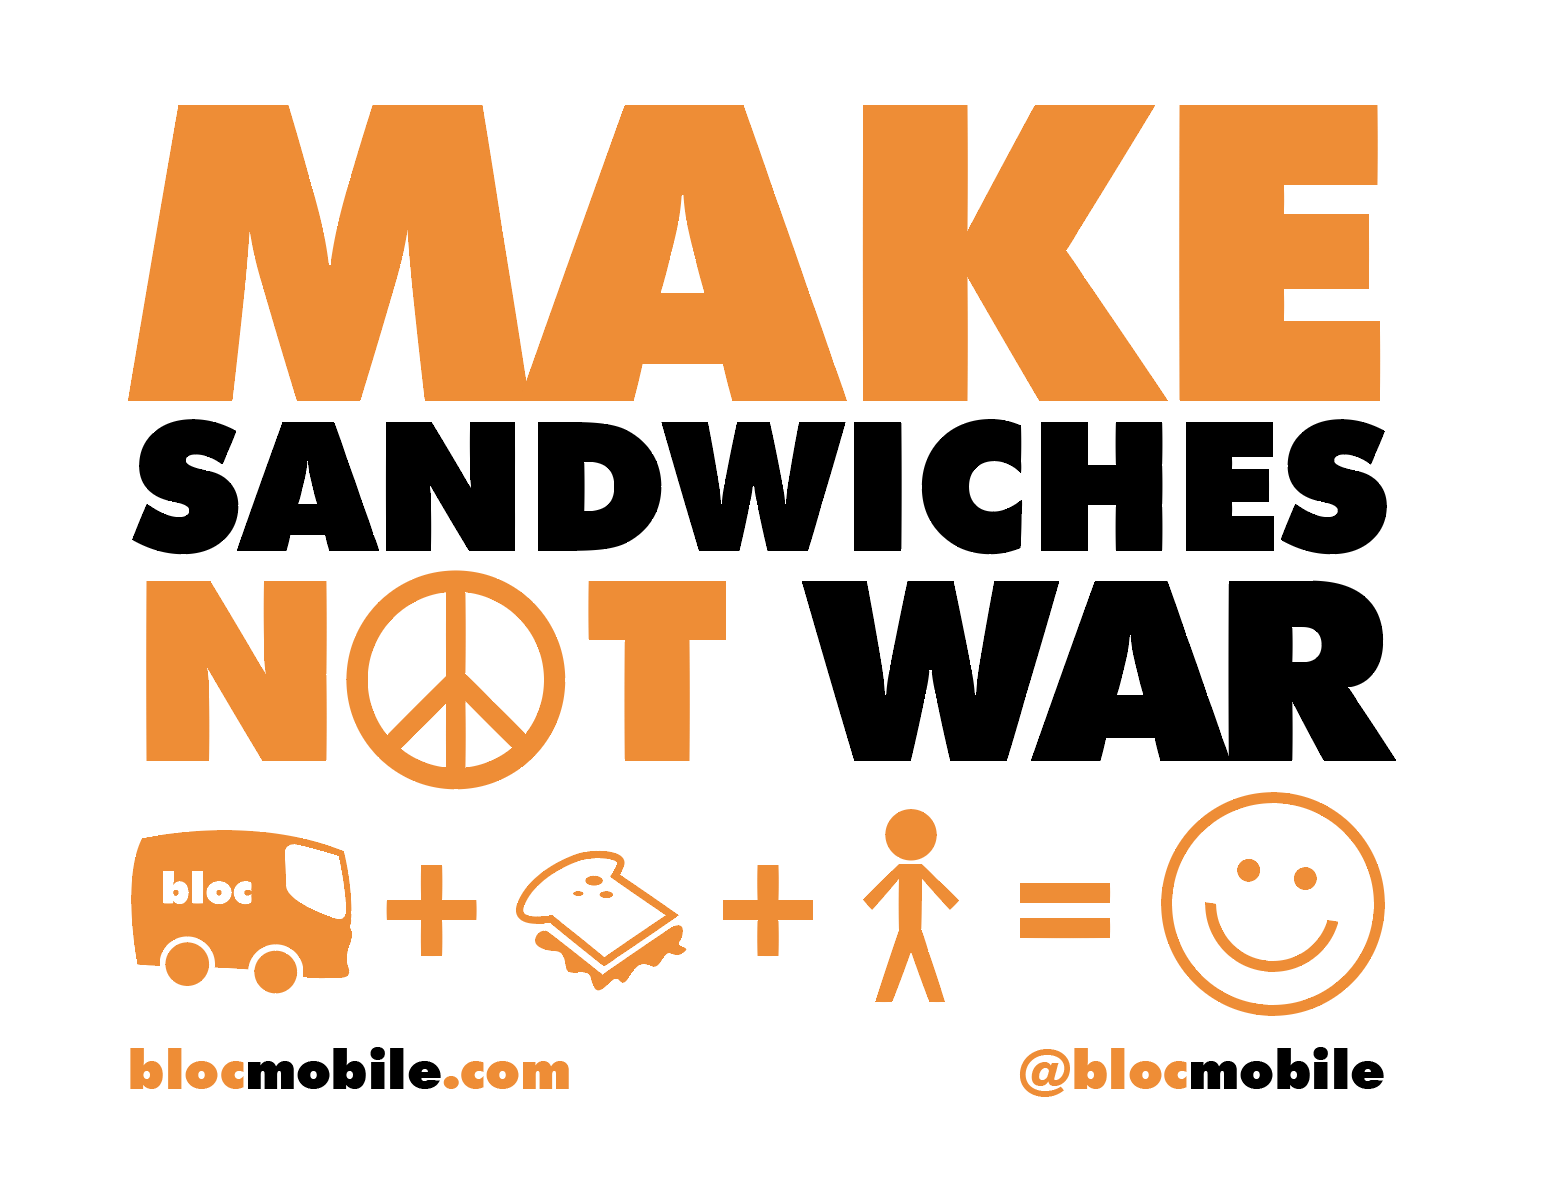 blocmobile make sandwiches not war